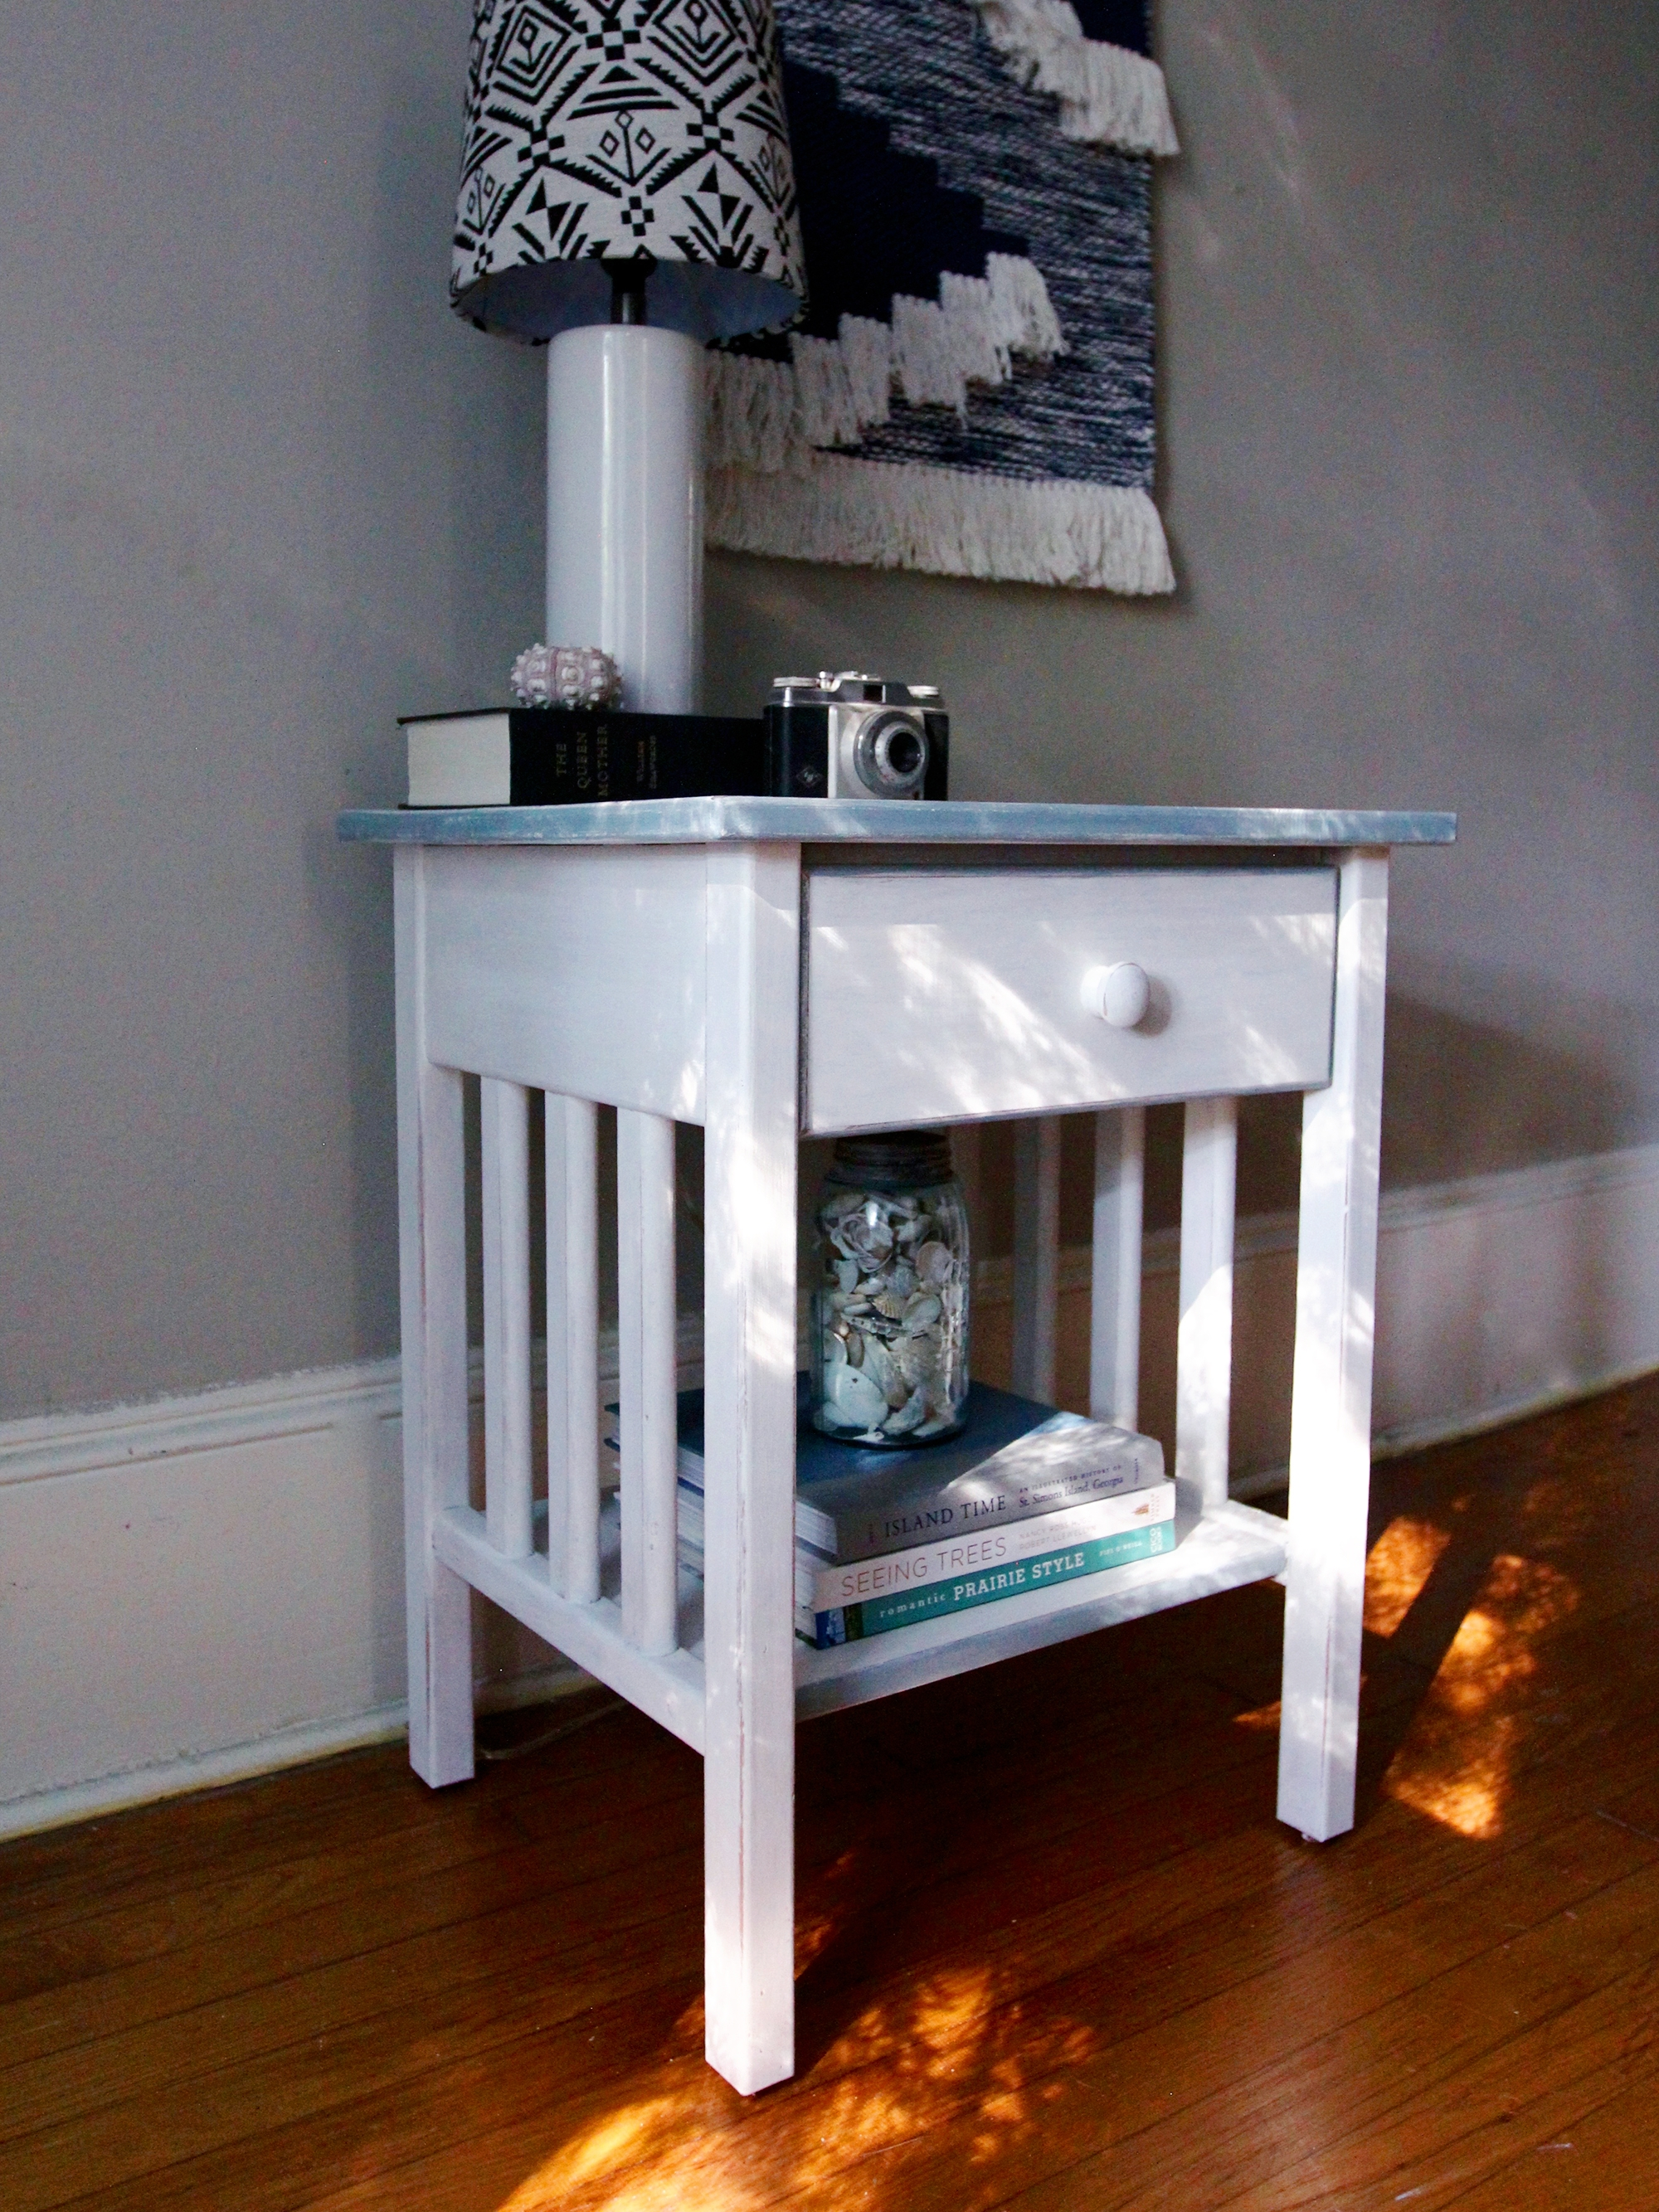 jo-torrijos-a-simpler-design-annie-sloan-pure-white-gray-trim-nightstand-atlanta-painted-furniture-4.jpg